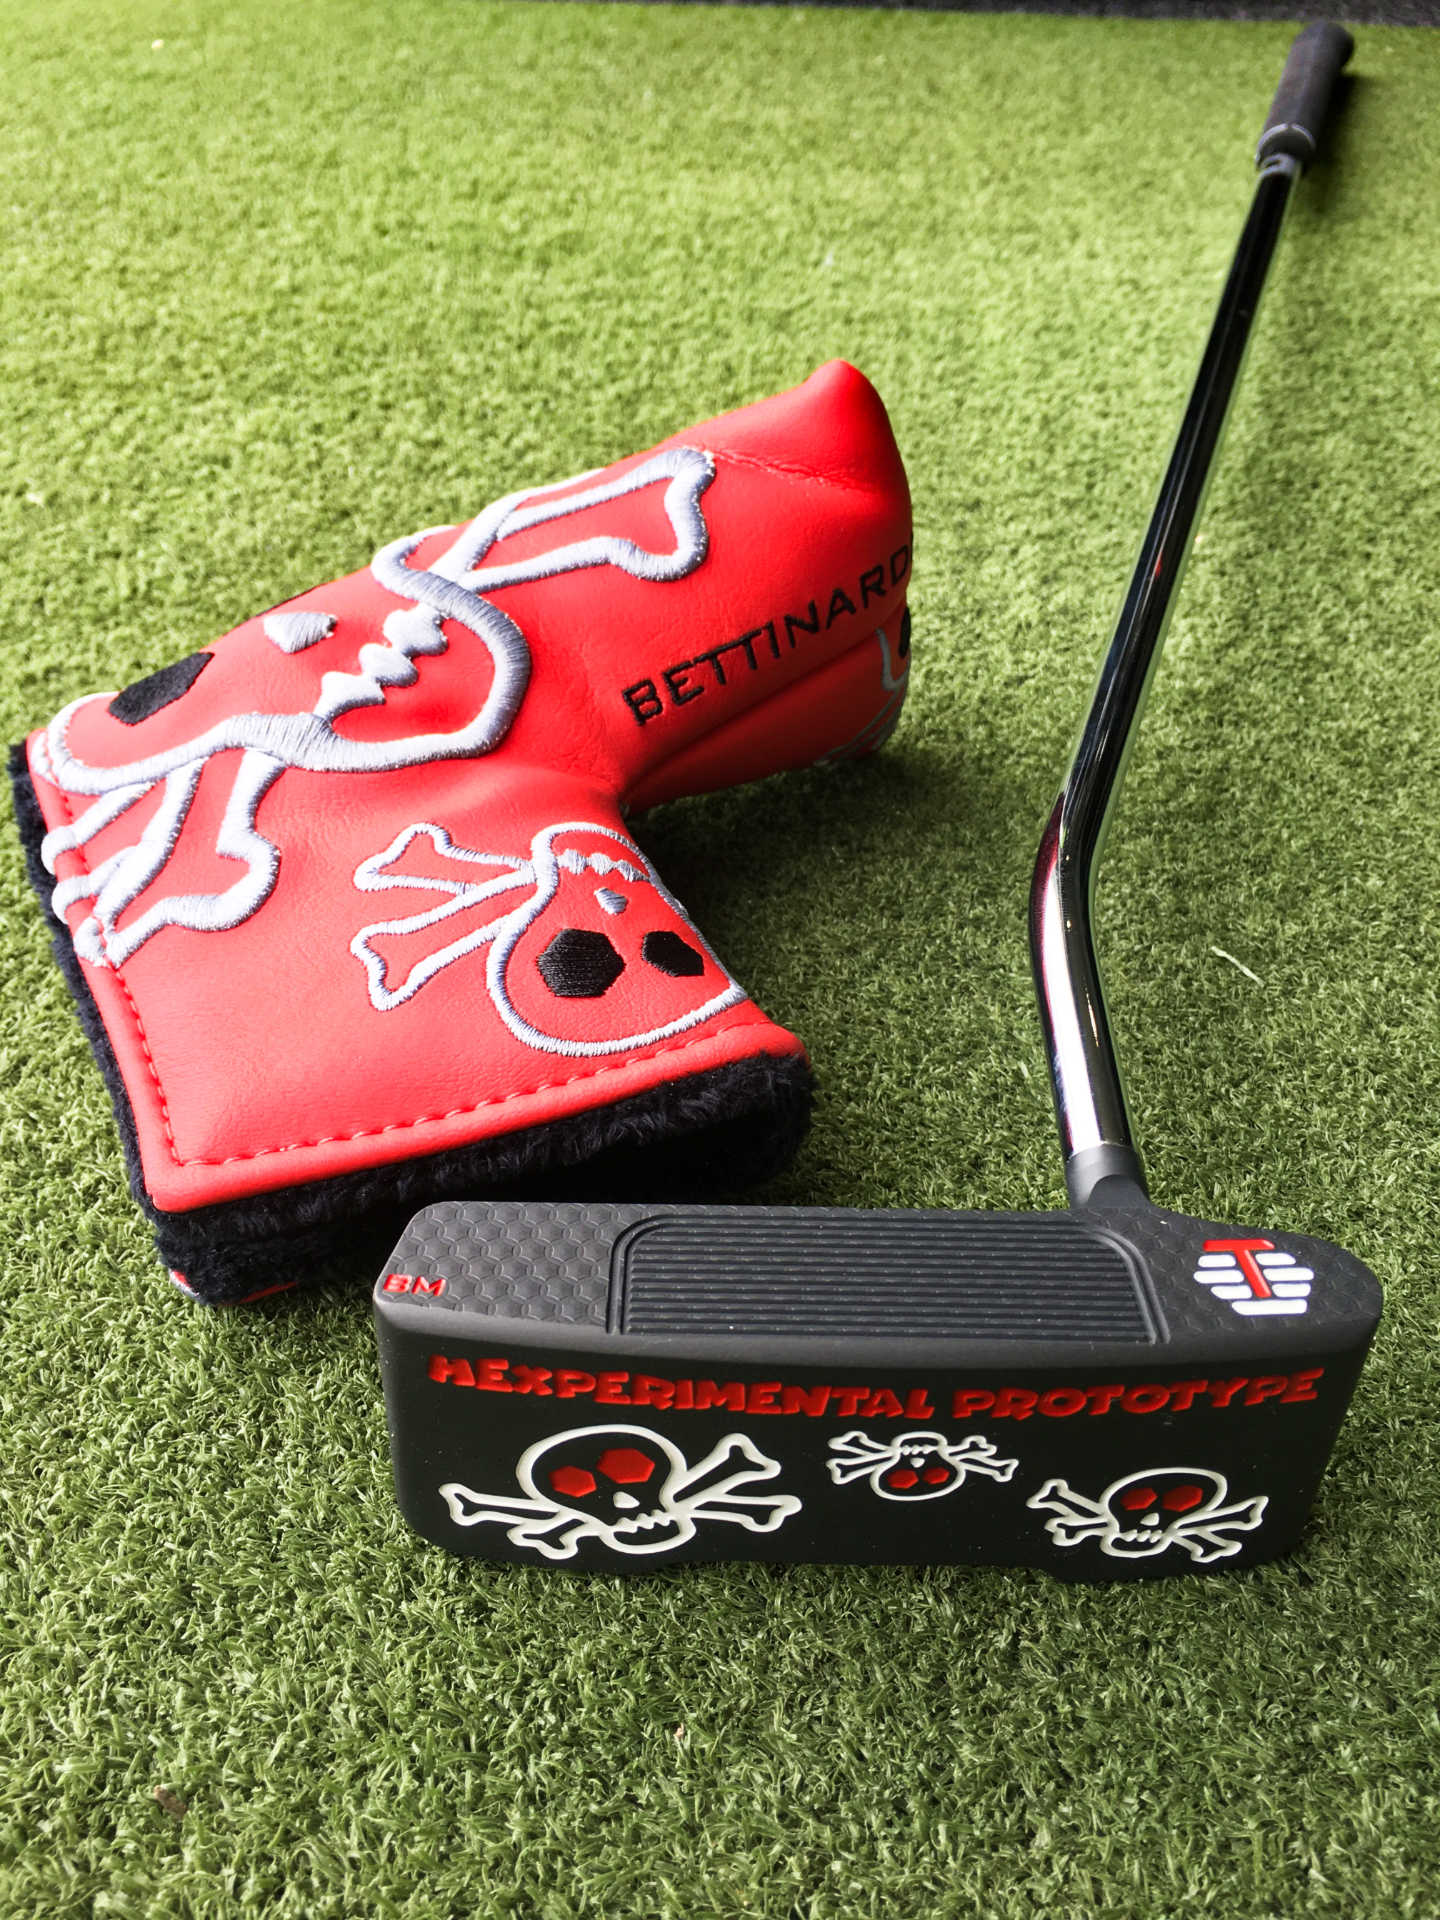 Custom Bettinardi SS28 Slotback Armlock Putter